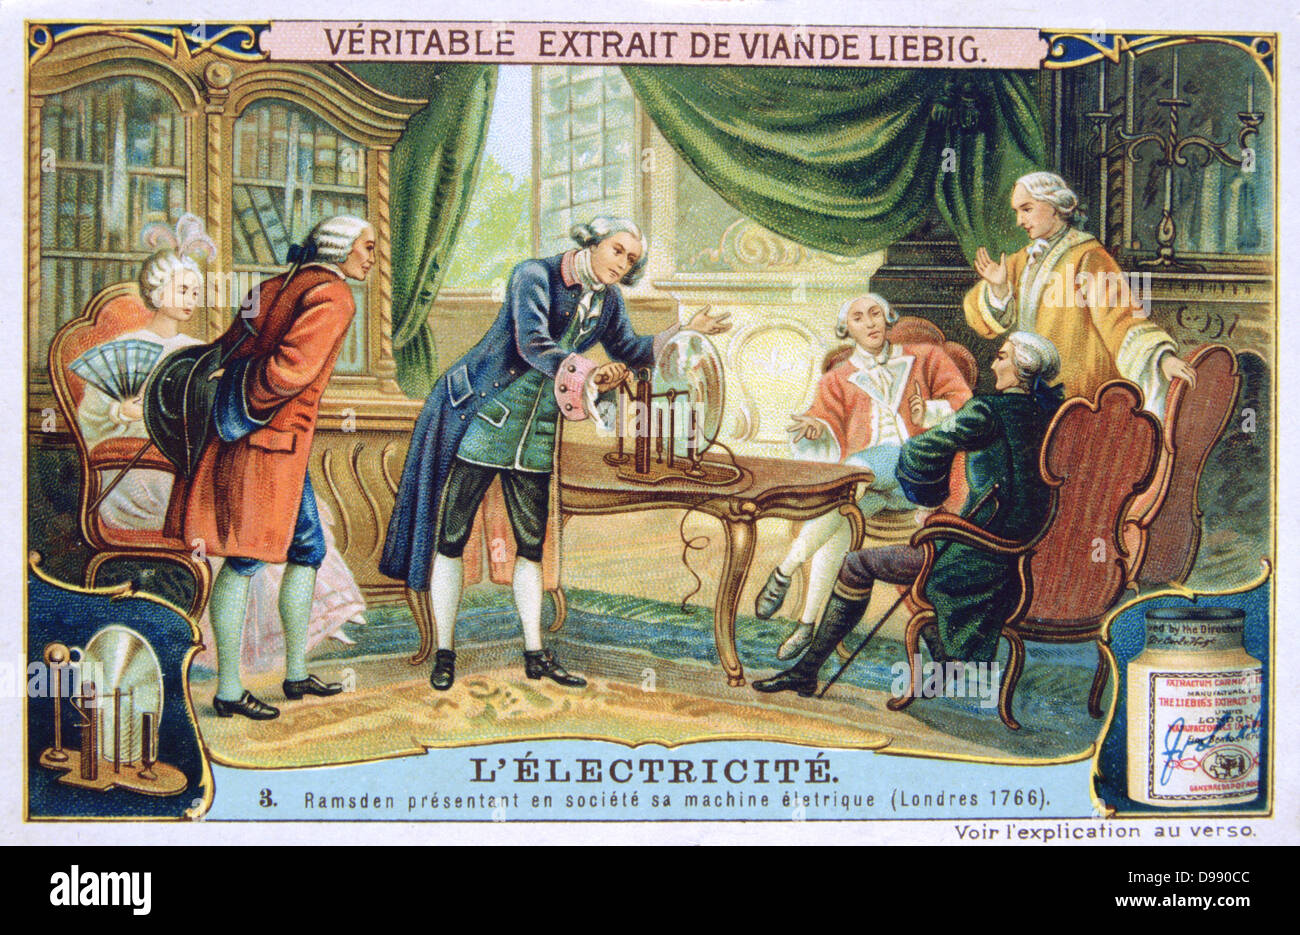 History of Electricity: Ramsden demonstrating his static electric machine in a fashionable household, 1766. Liebig Stock Photo